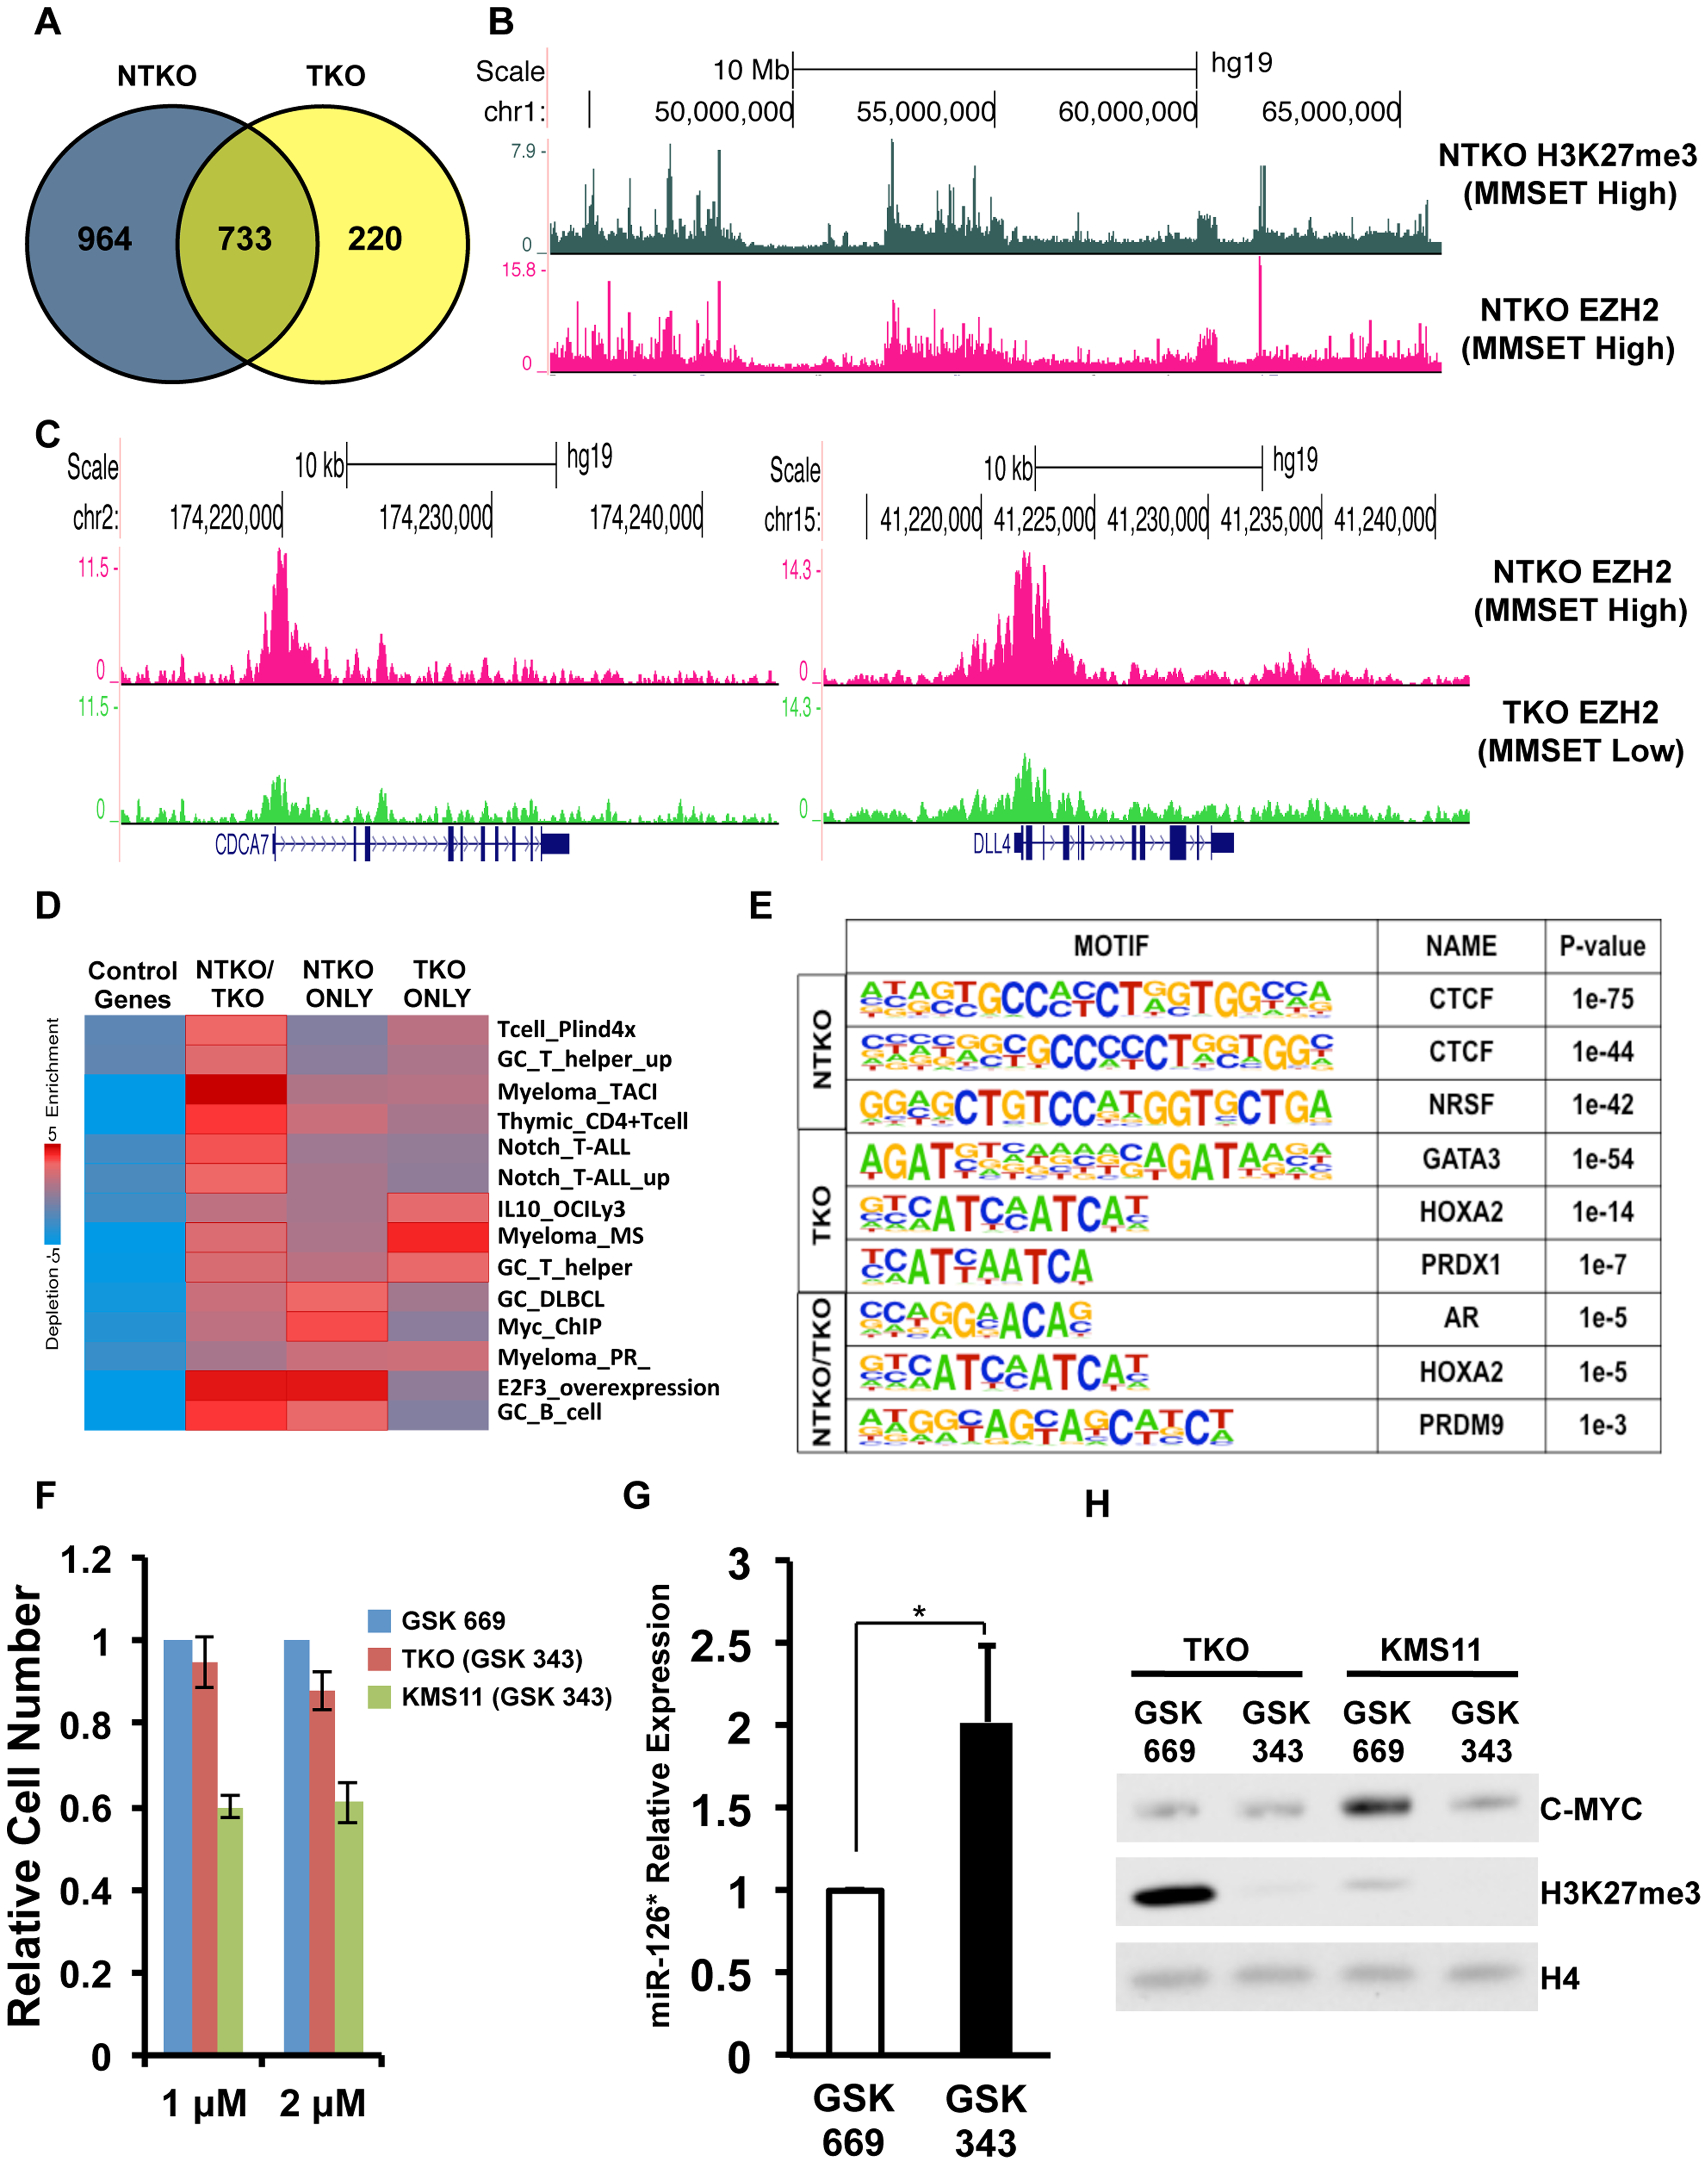 MMSET alters EZH2 binding in t(4;14)+ myeloma cells.